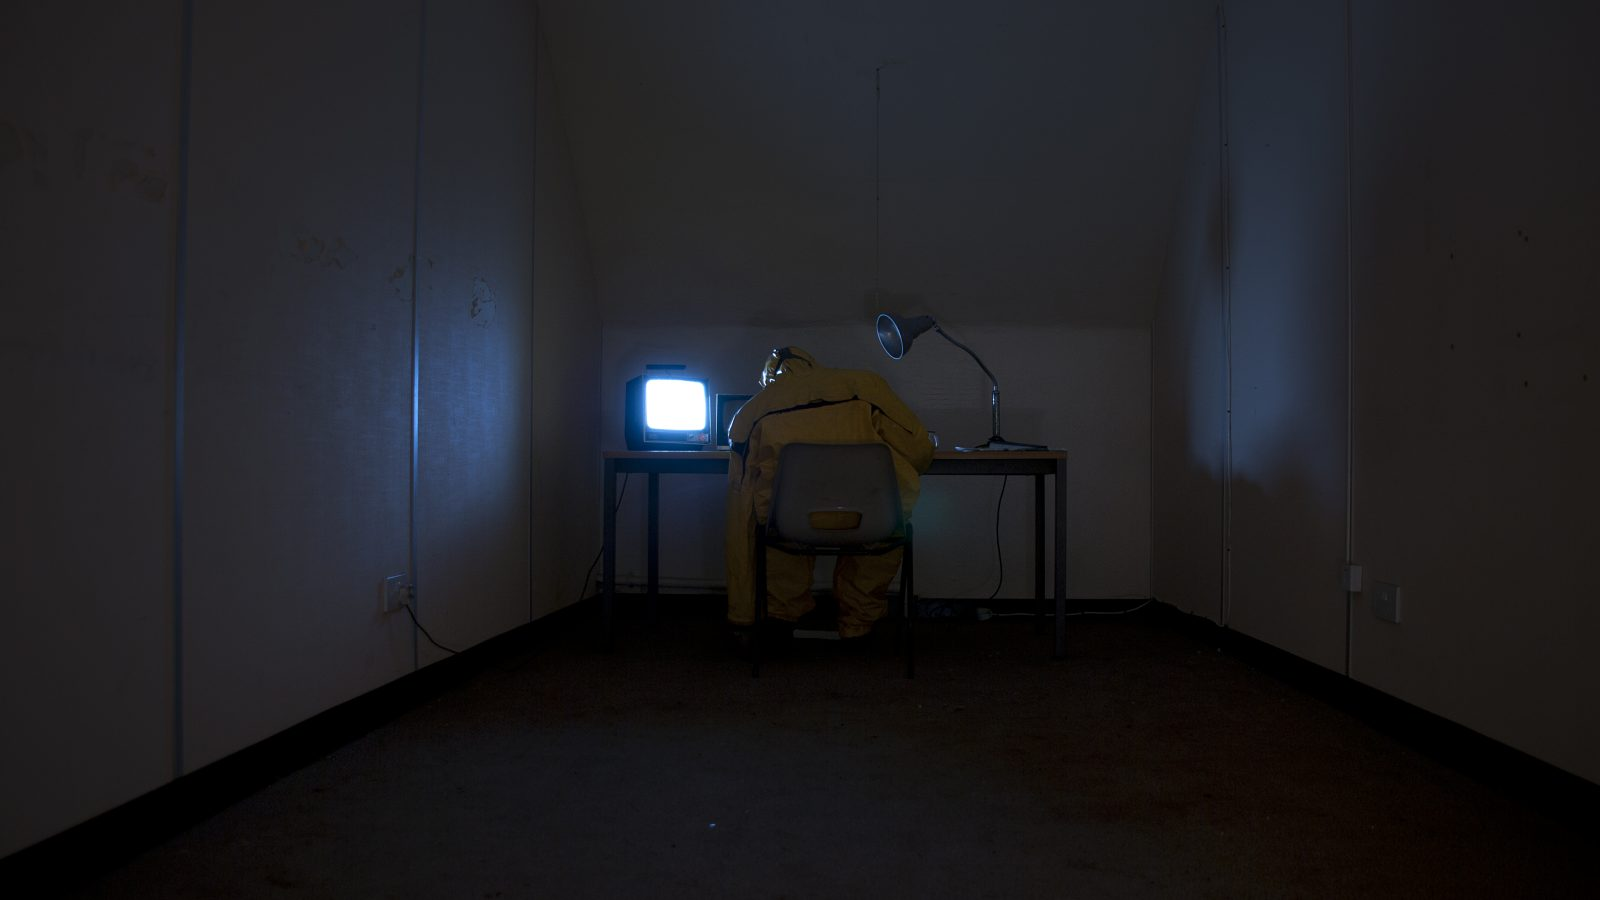 In a dark room, someone in sanitation overalls sits at a desk with a mini tv